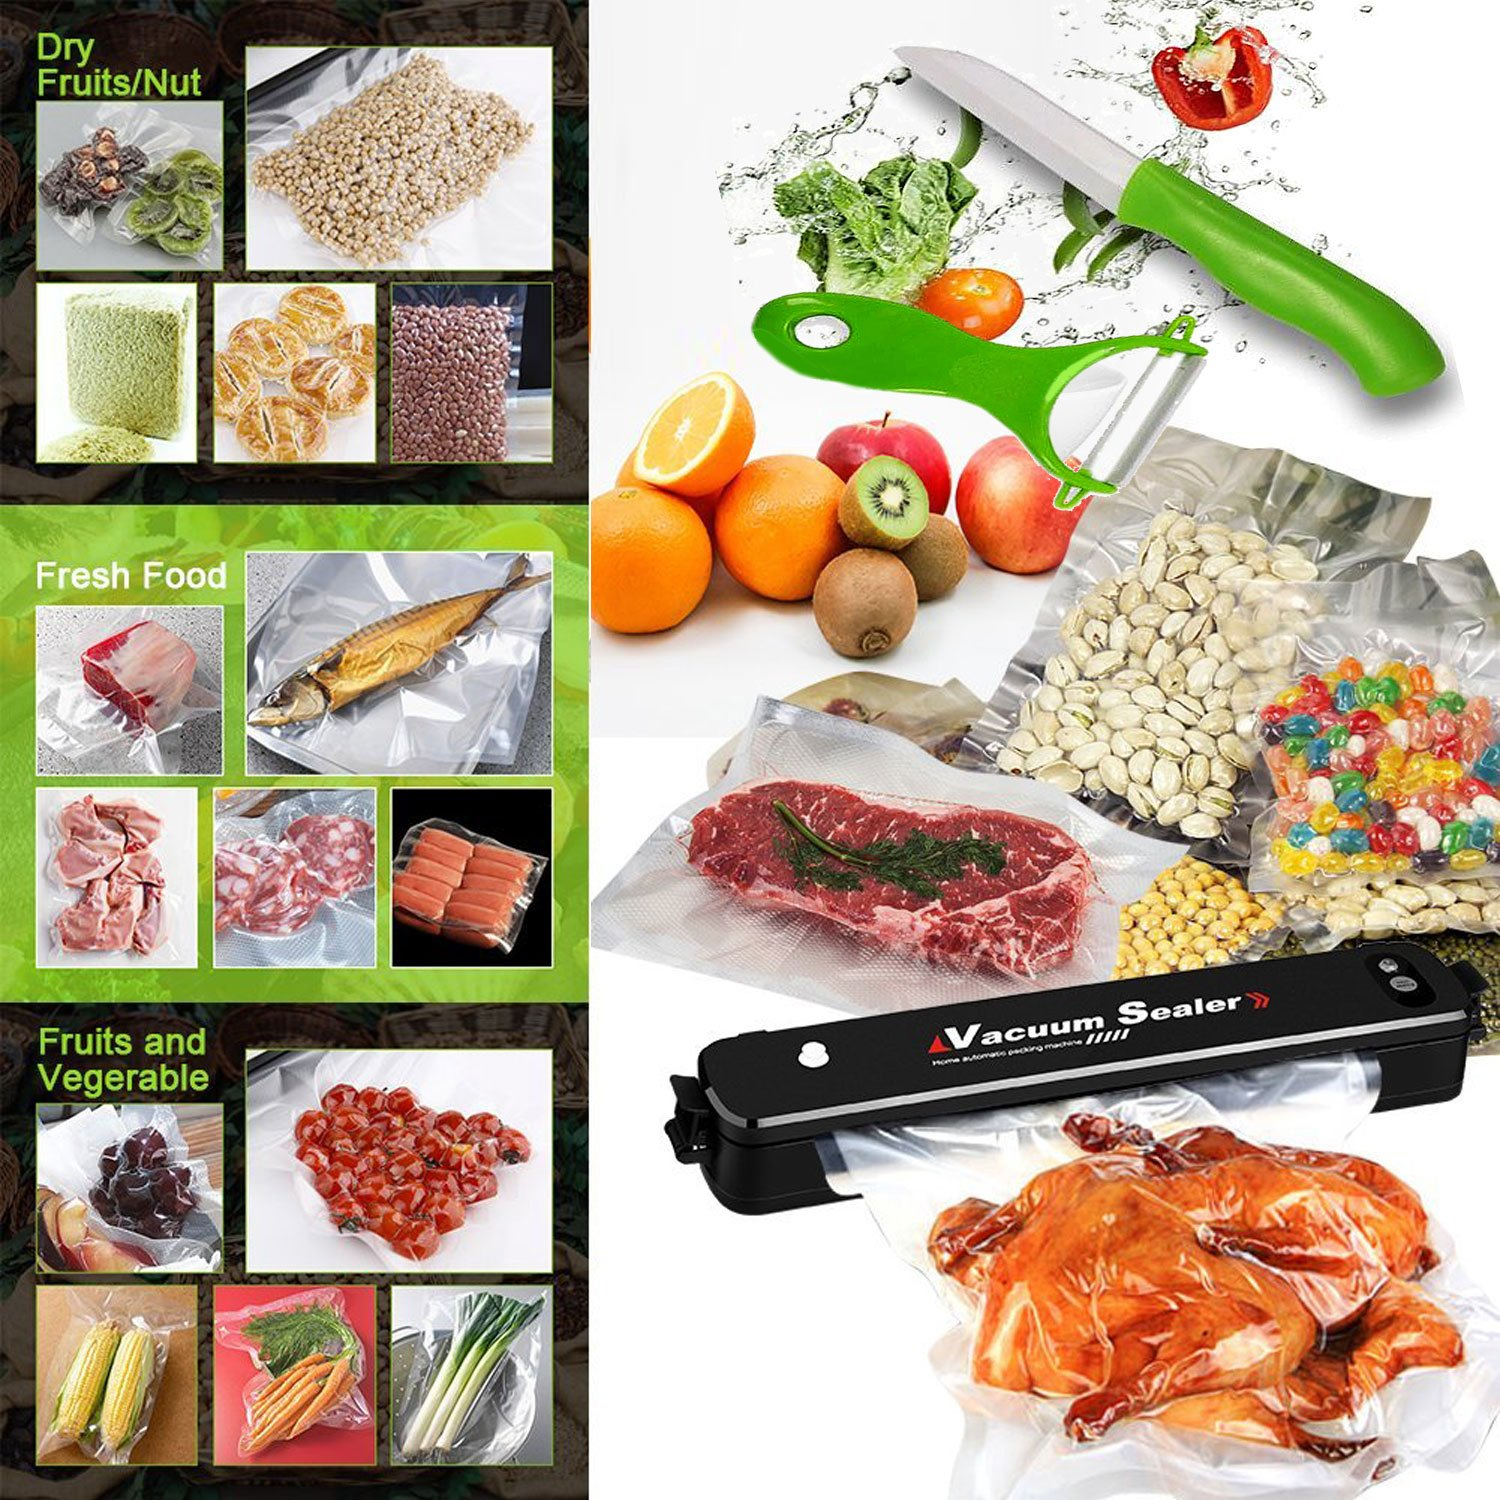 Vacuum Sealer Machine , Portable Compact Vacuum Sealing System for Vacuum and Seal /Seal , Dry / Wet Household Food Fresh Sealing Packing Machine with 15pcs Vacuum Bags, Black